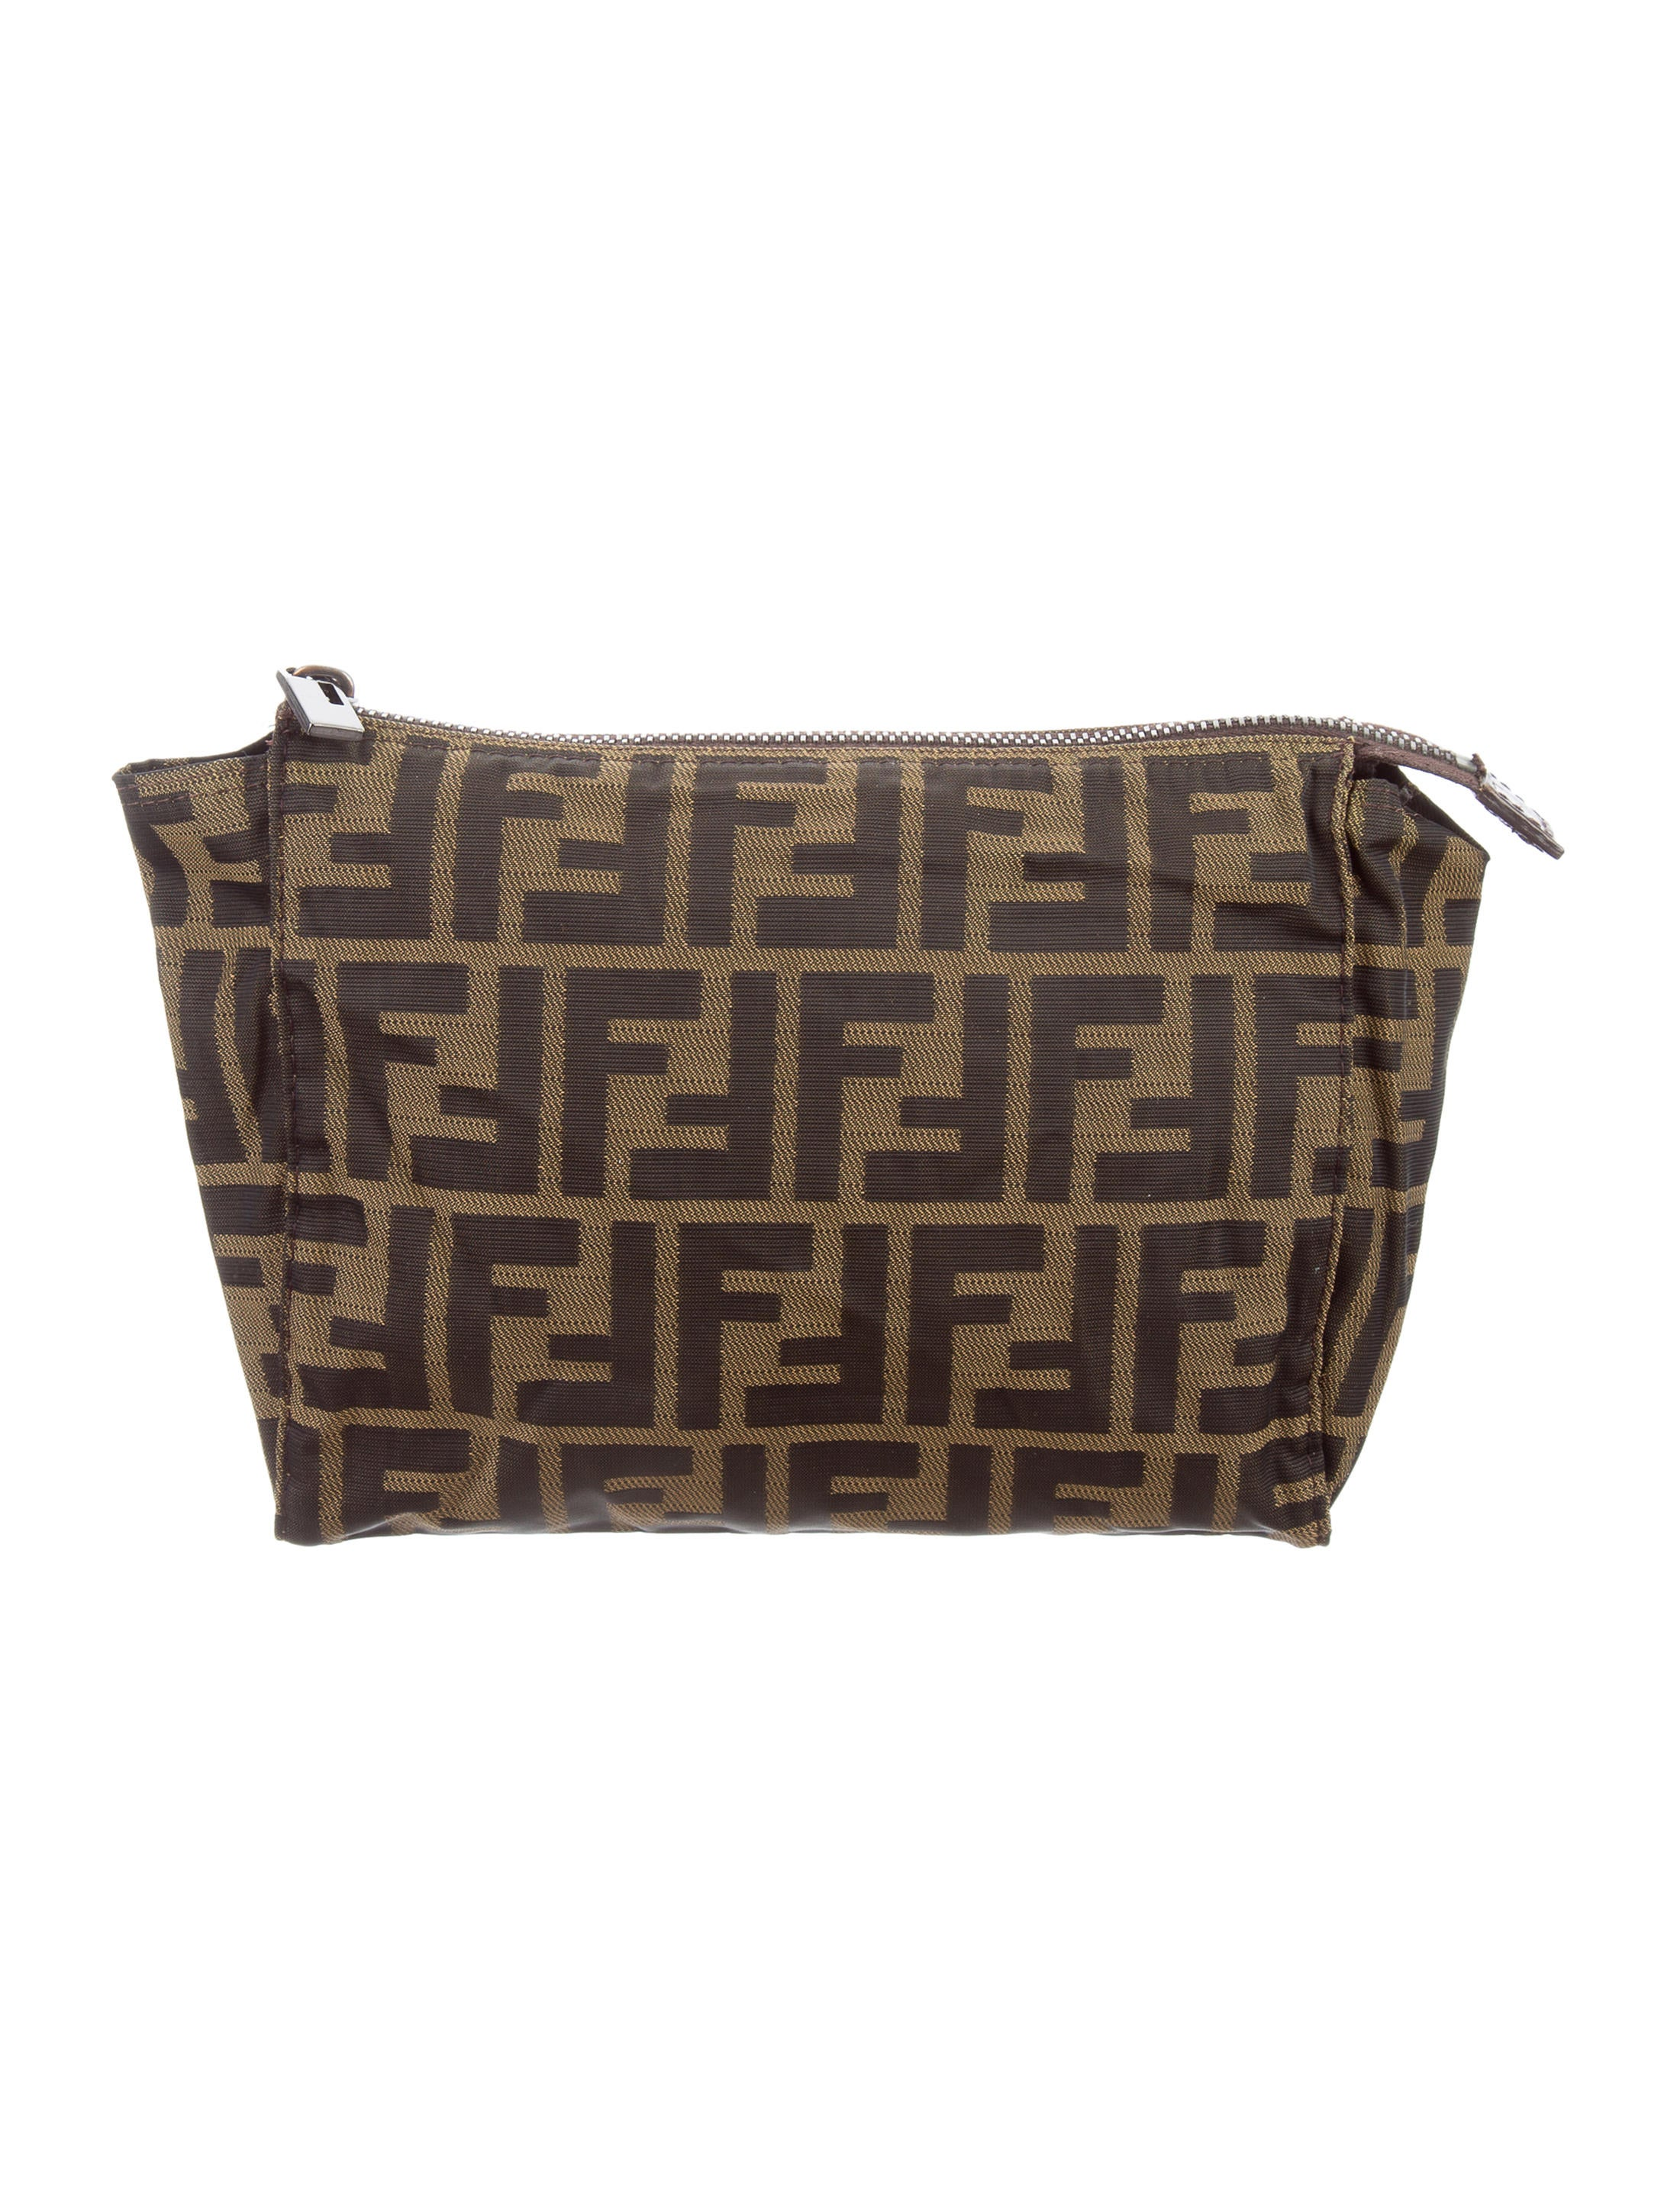 f051fdd97196 Fendi Zucca Cosmetic Bag - Accessories - FEN63968